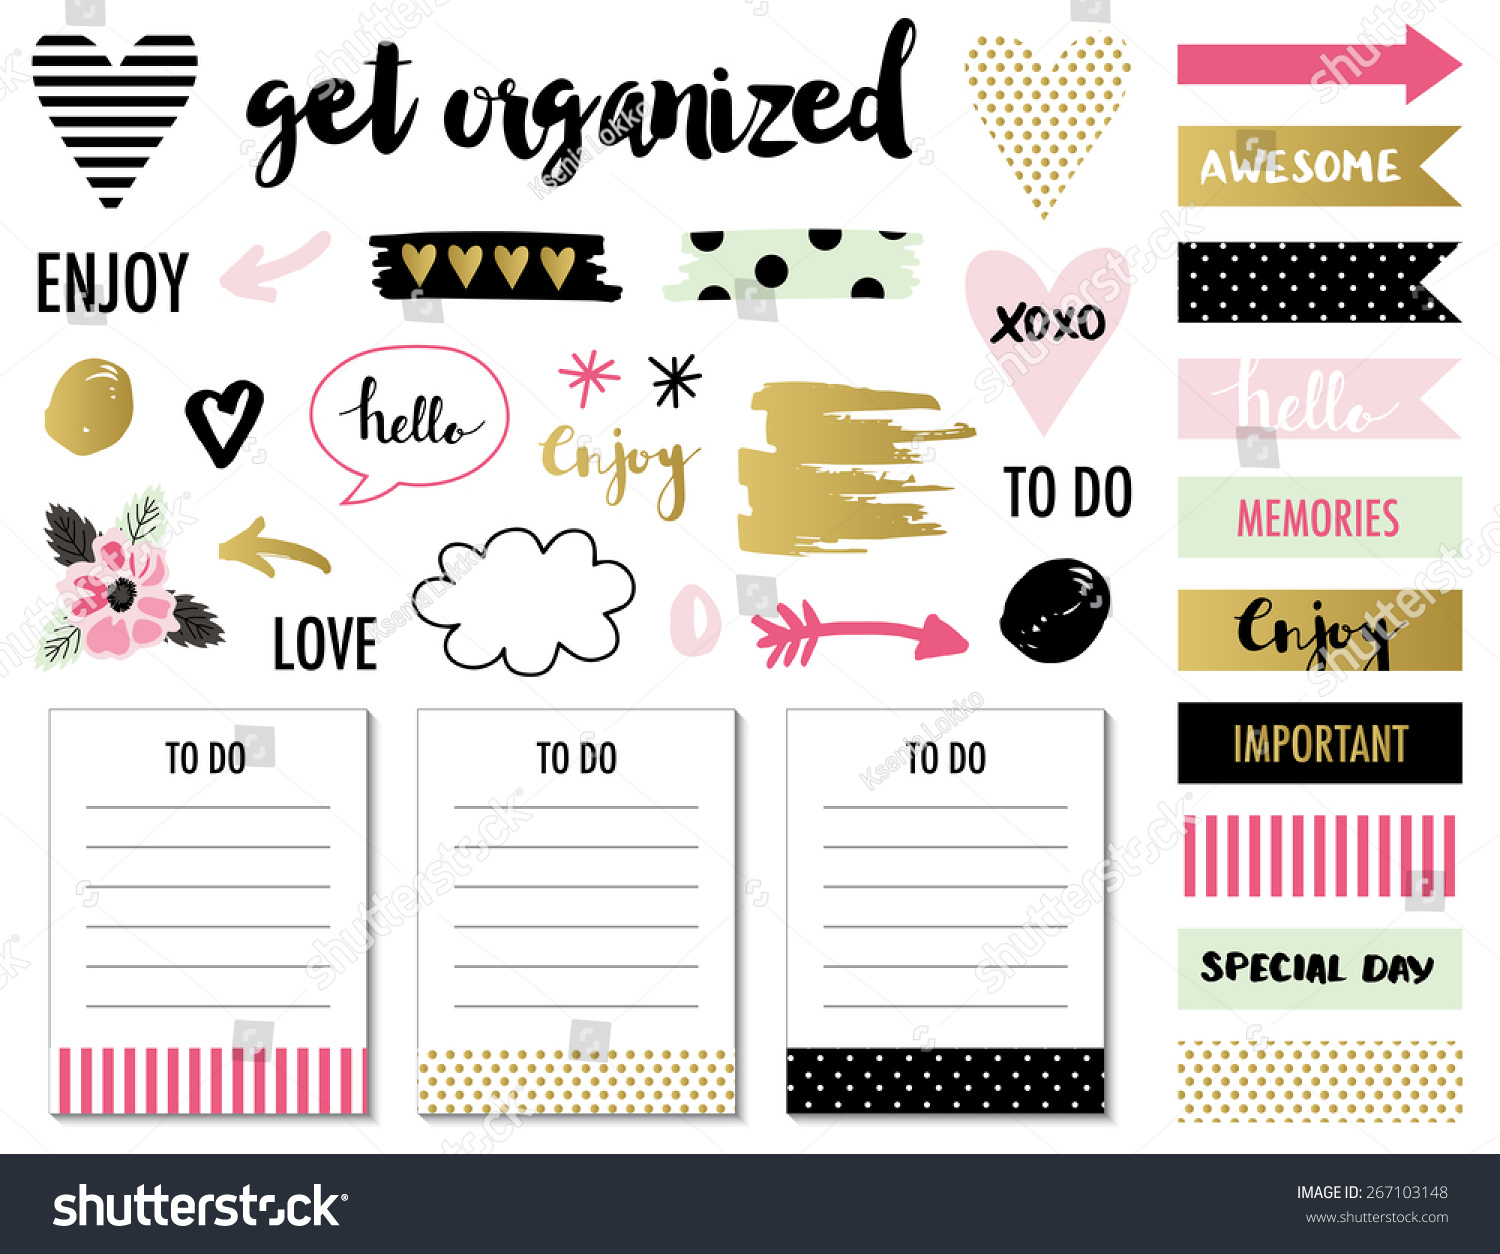 Signs And Symbols For Organized You Planner Template For